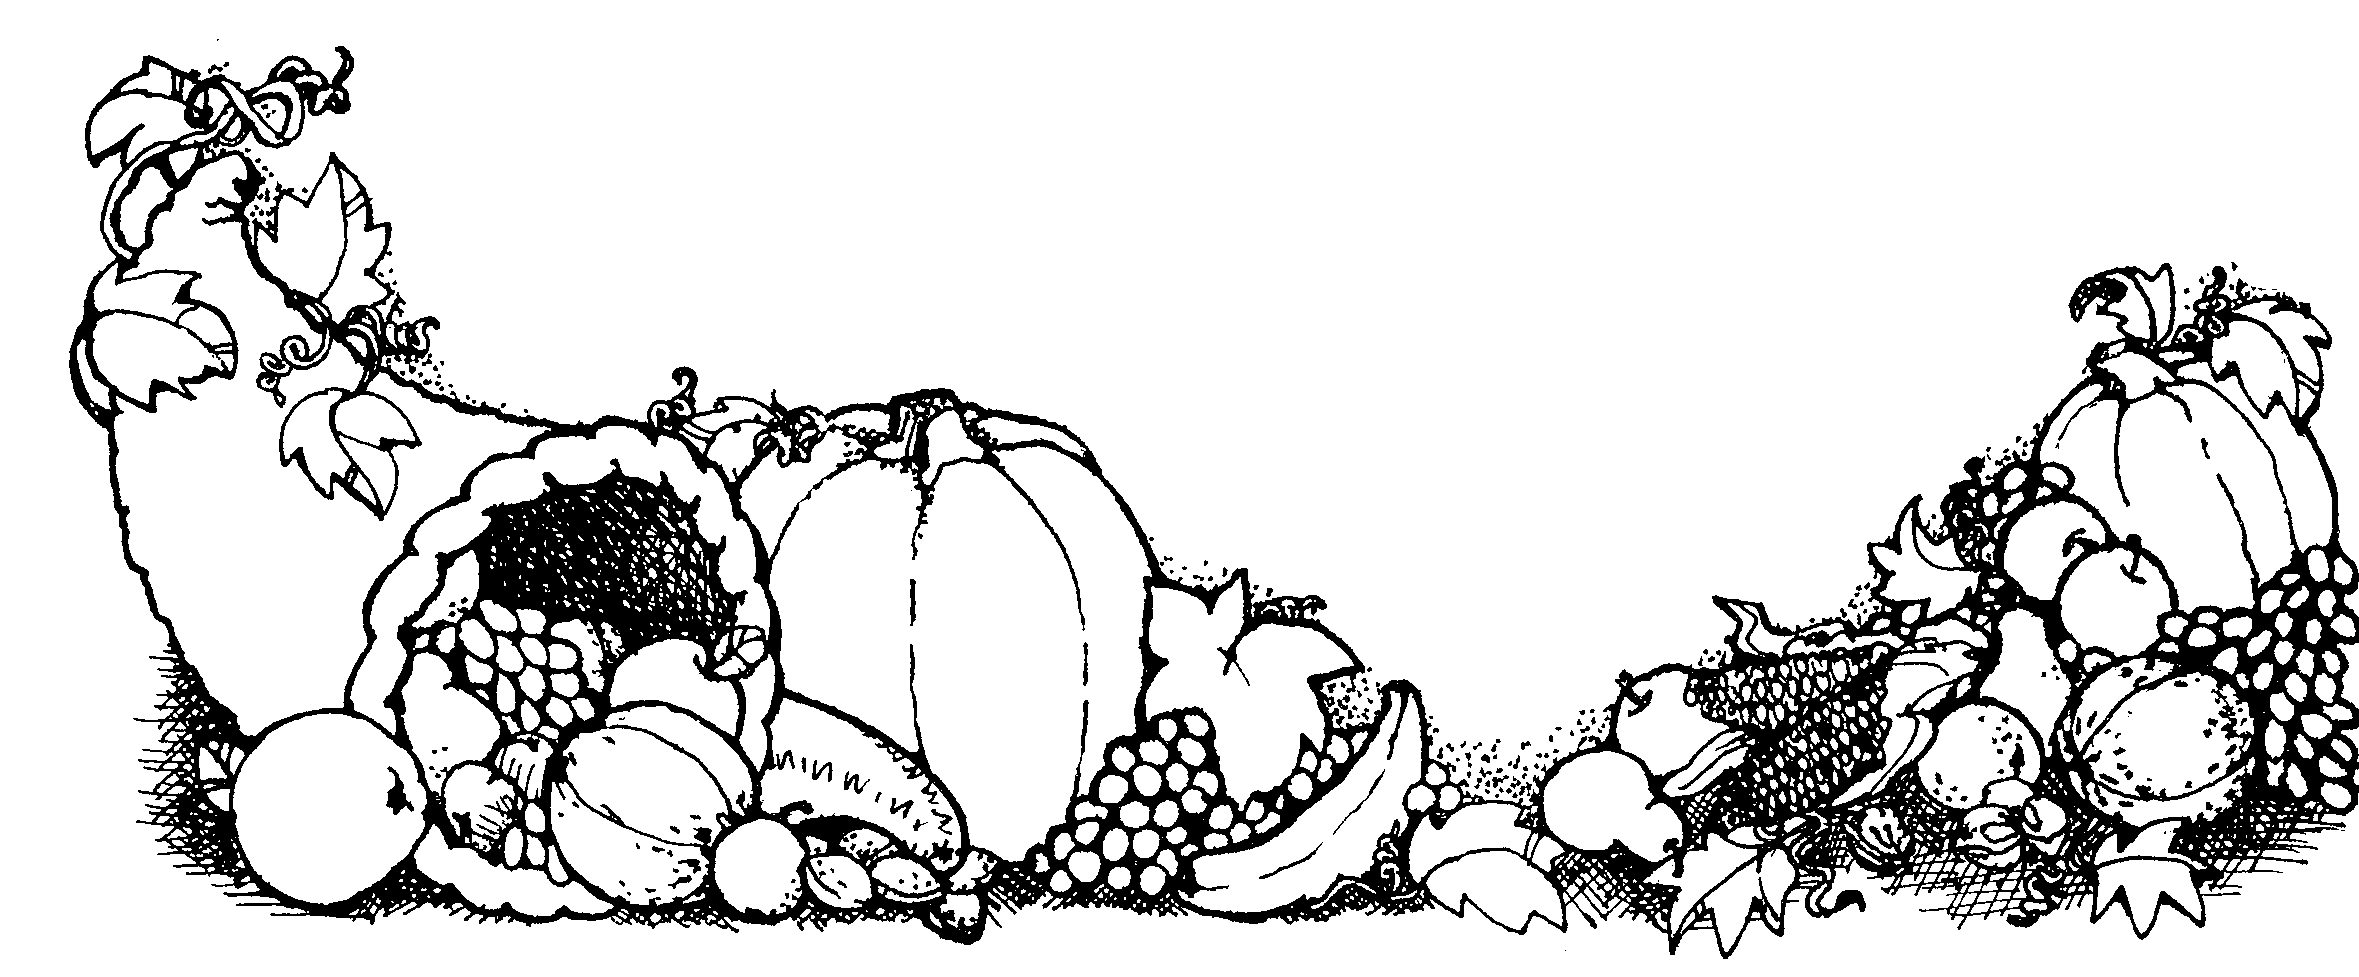 Turkey Dinner Clipart Black And White Emma S Trend Fashion And Style